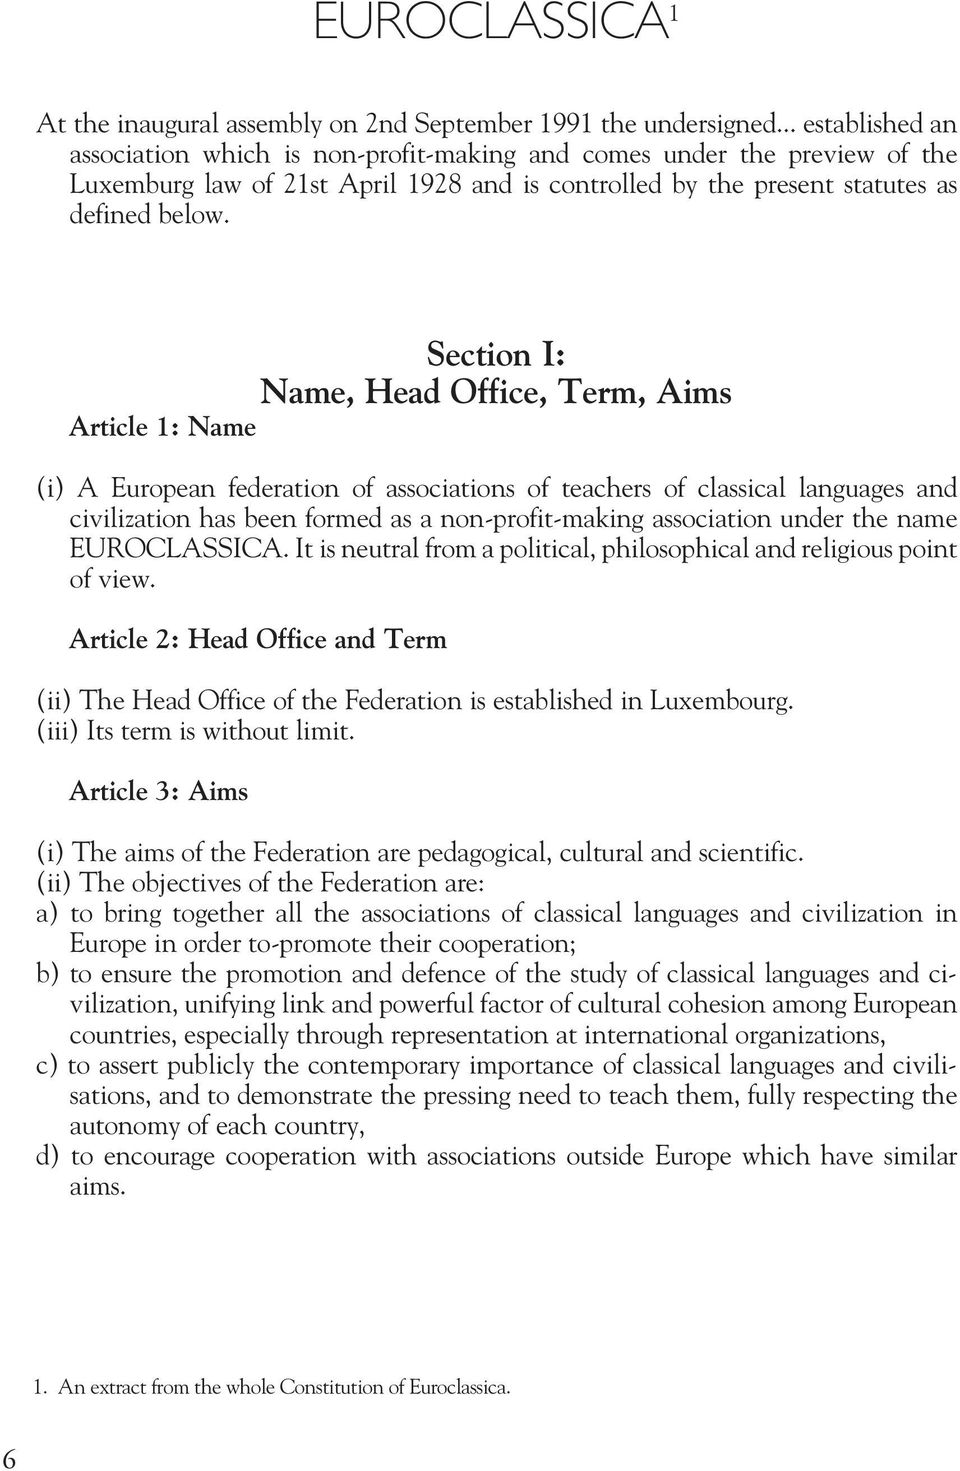 Section I: Name, Head Office, Term, Aims Article 1: Name (i) A European federation of associations of teachers of classical languages and civilization has been formed as a non-profit-making